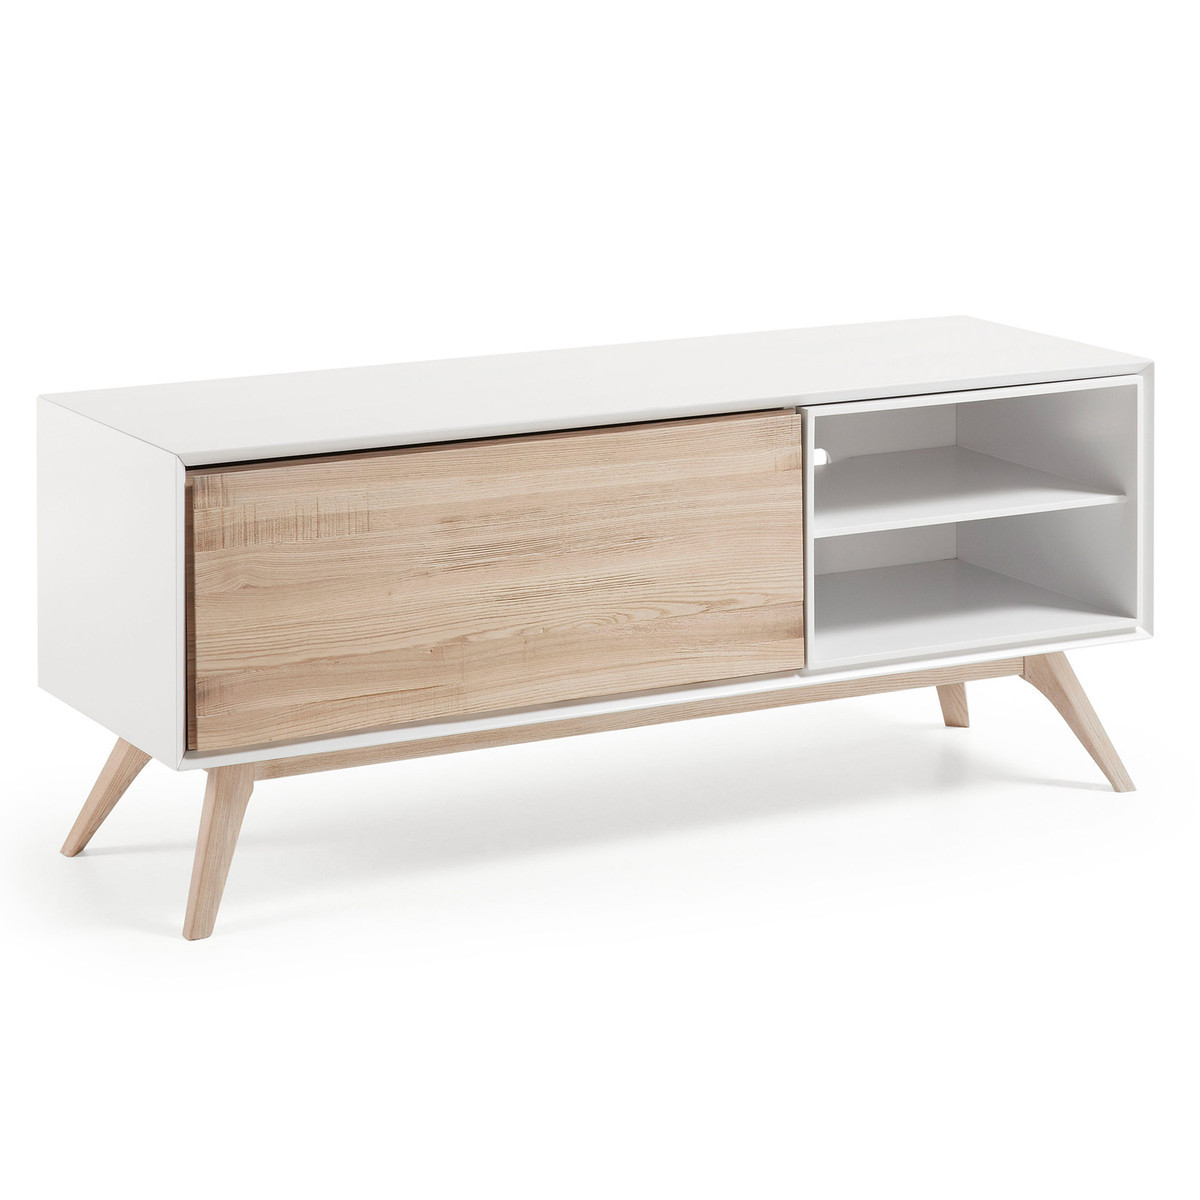 Meuble Tv Scandinave Bois Meuble Tv Scandinave 1 Porte Billy